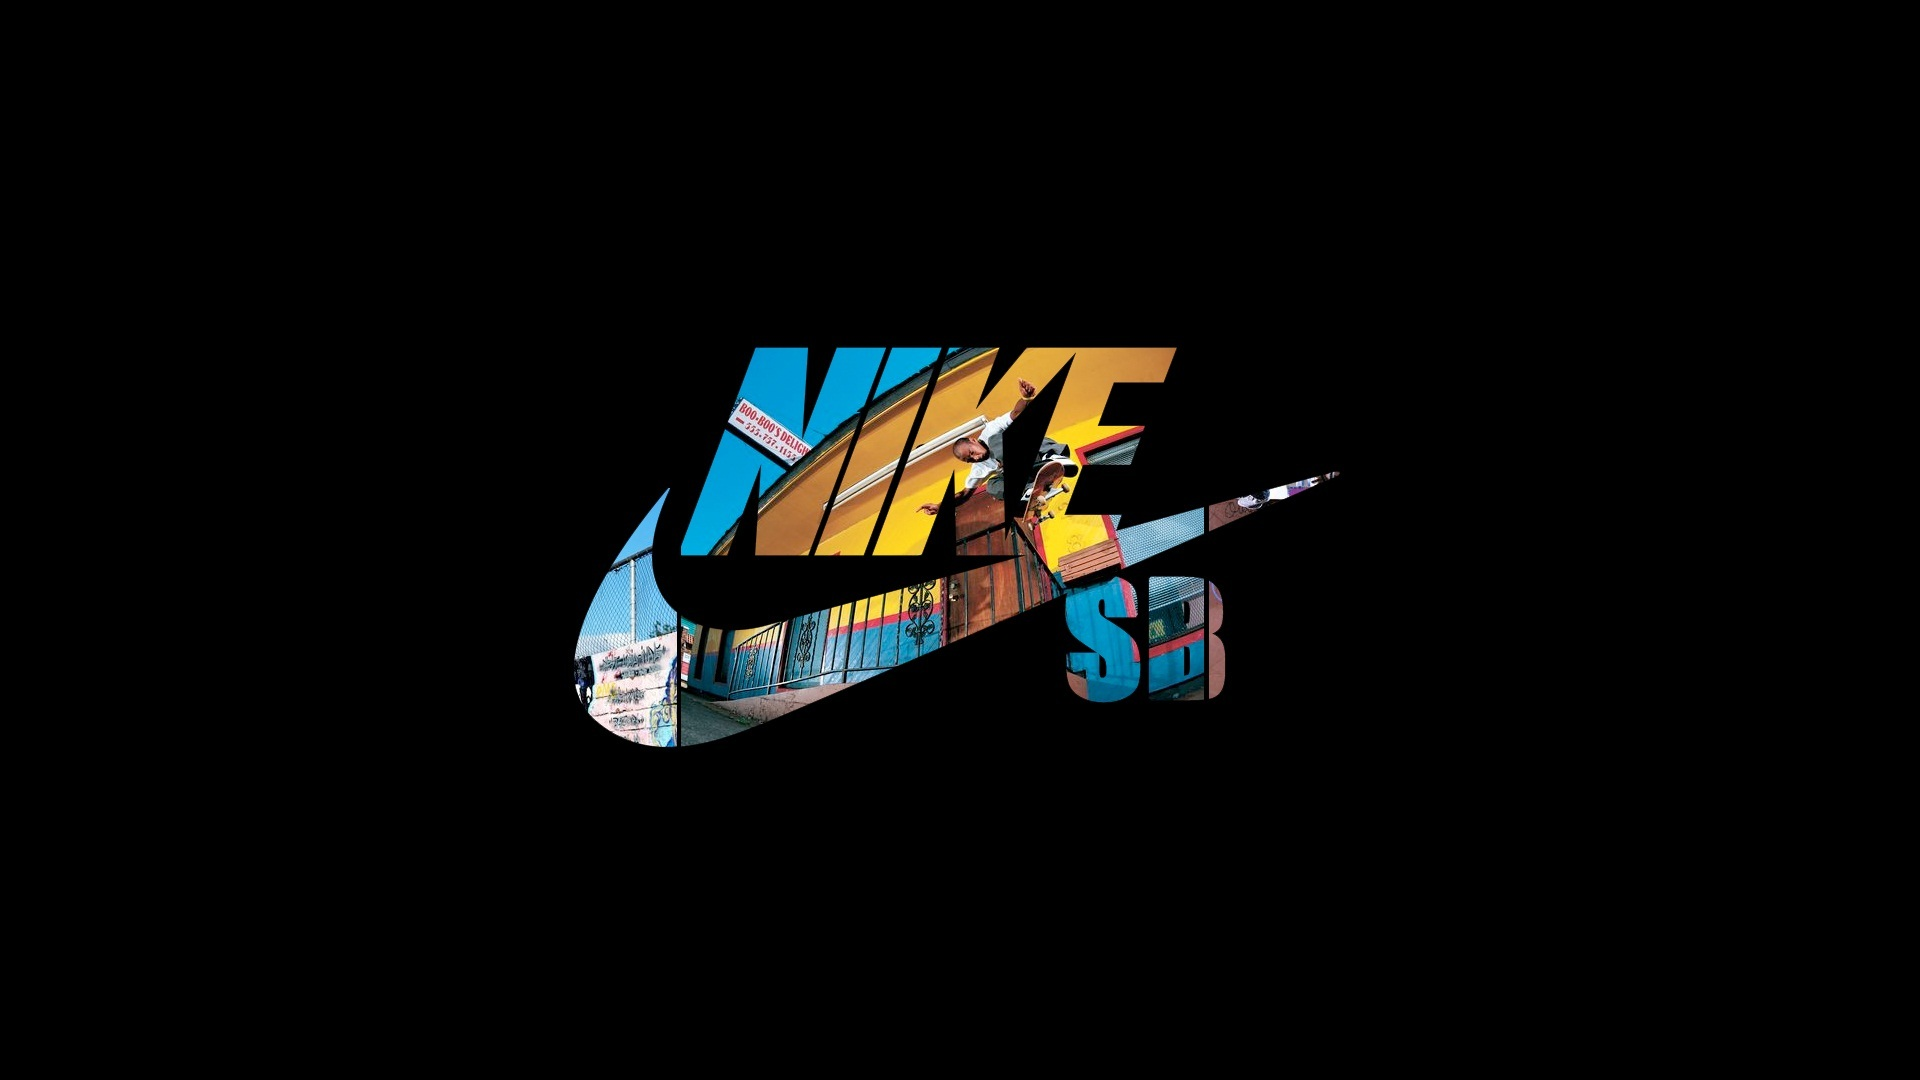 Nike Just Do It Wallpaper 46726 1920x1080 Px